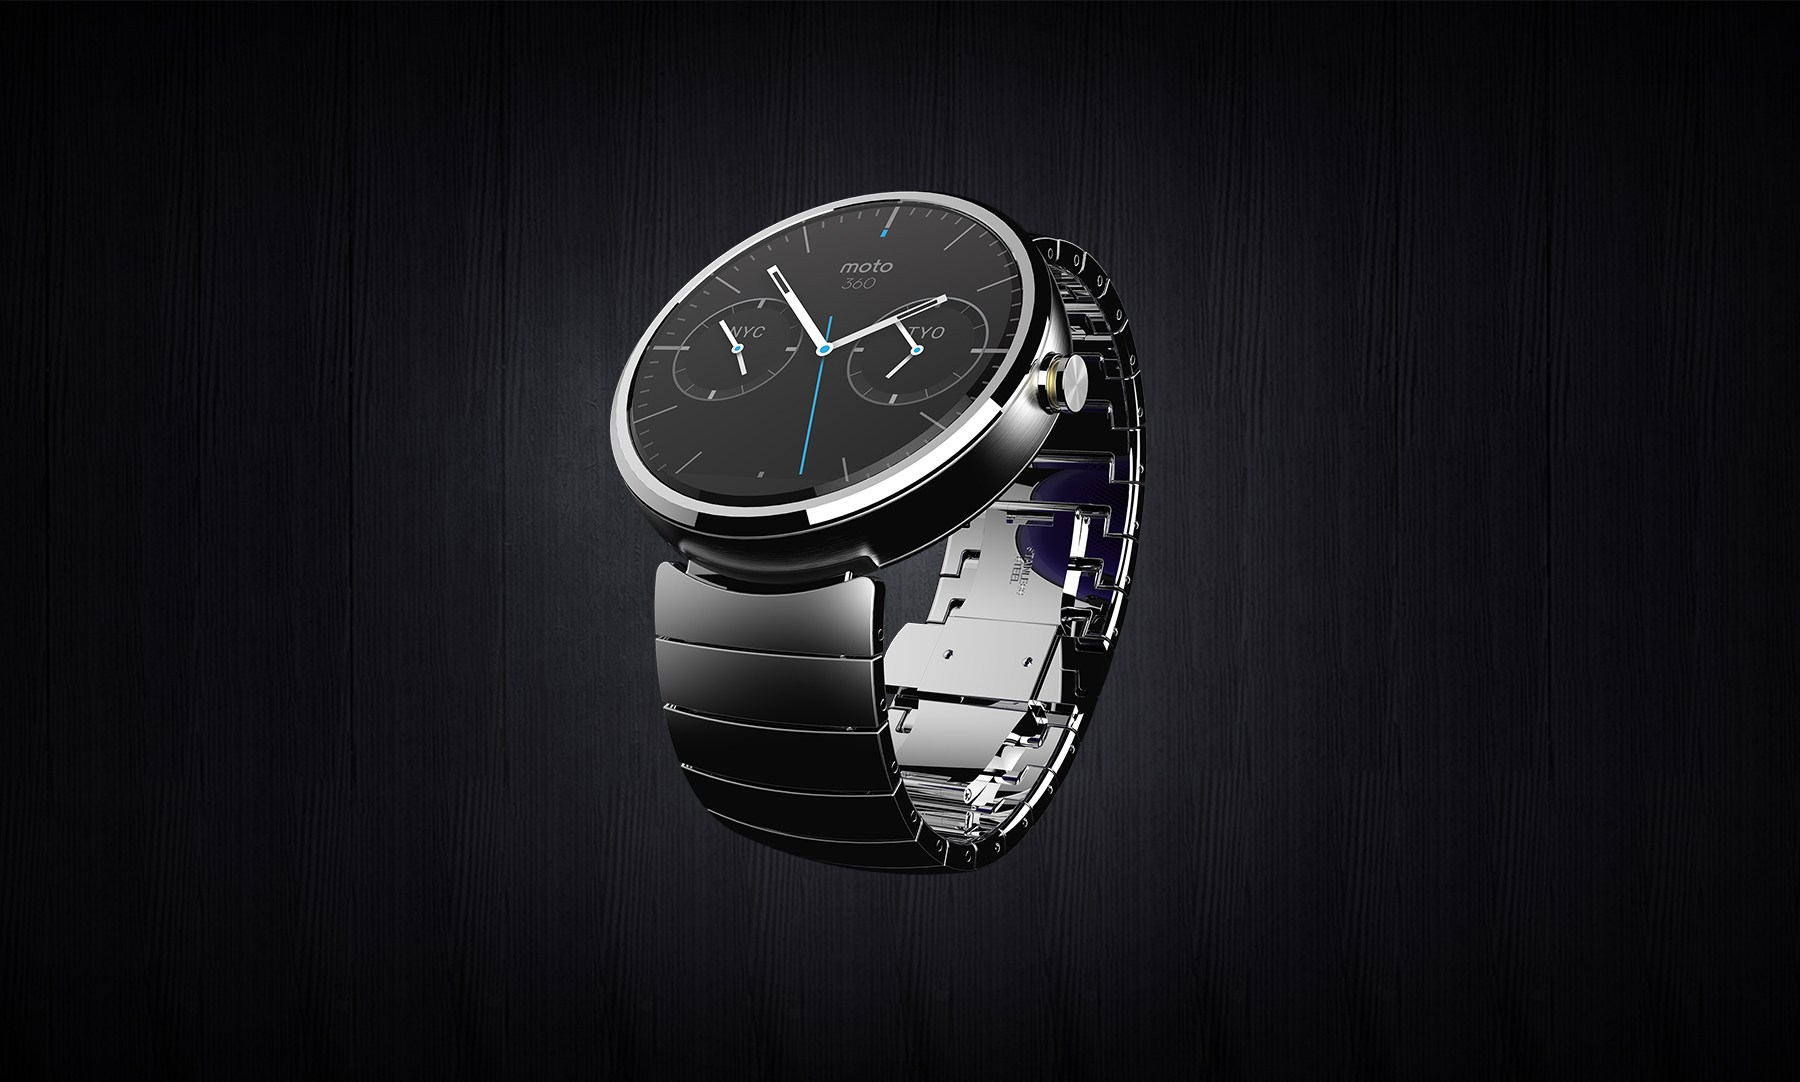 Motorola officialise sa smartwatch Android, la Moto 360